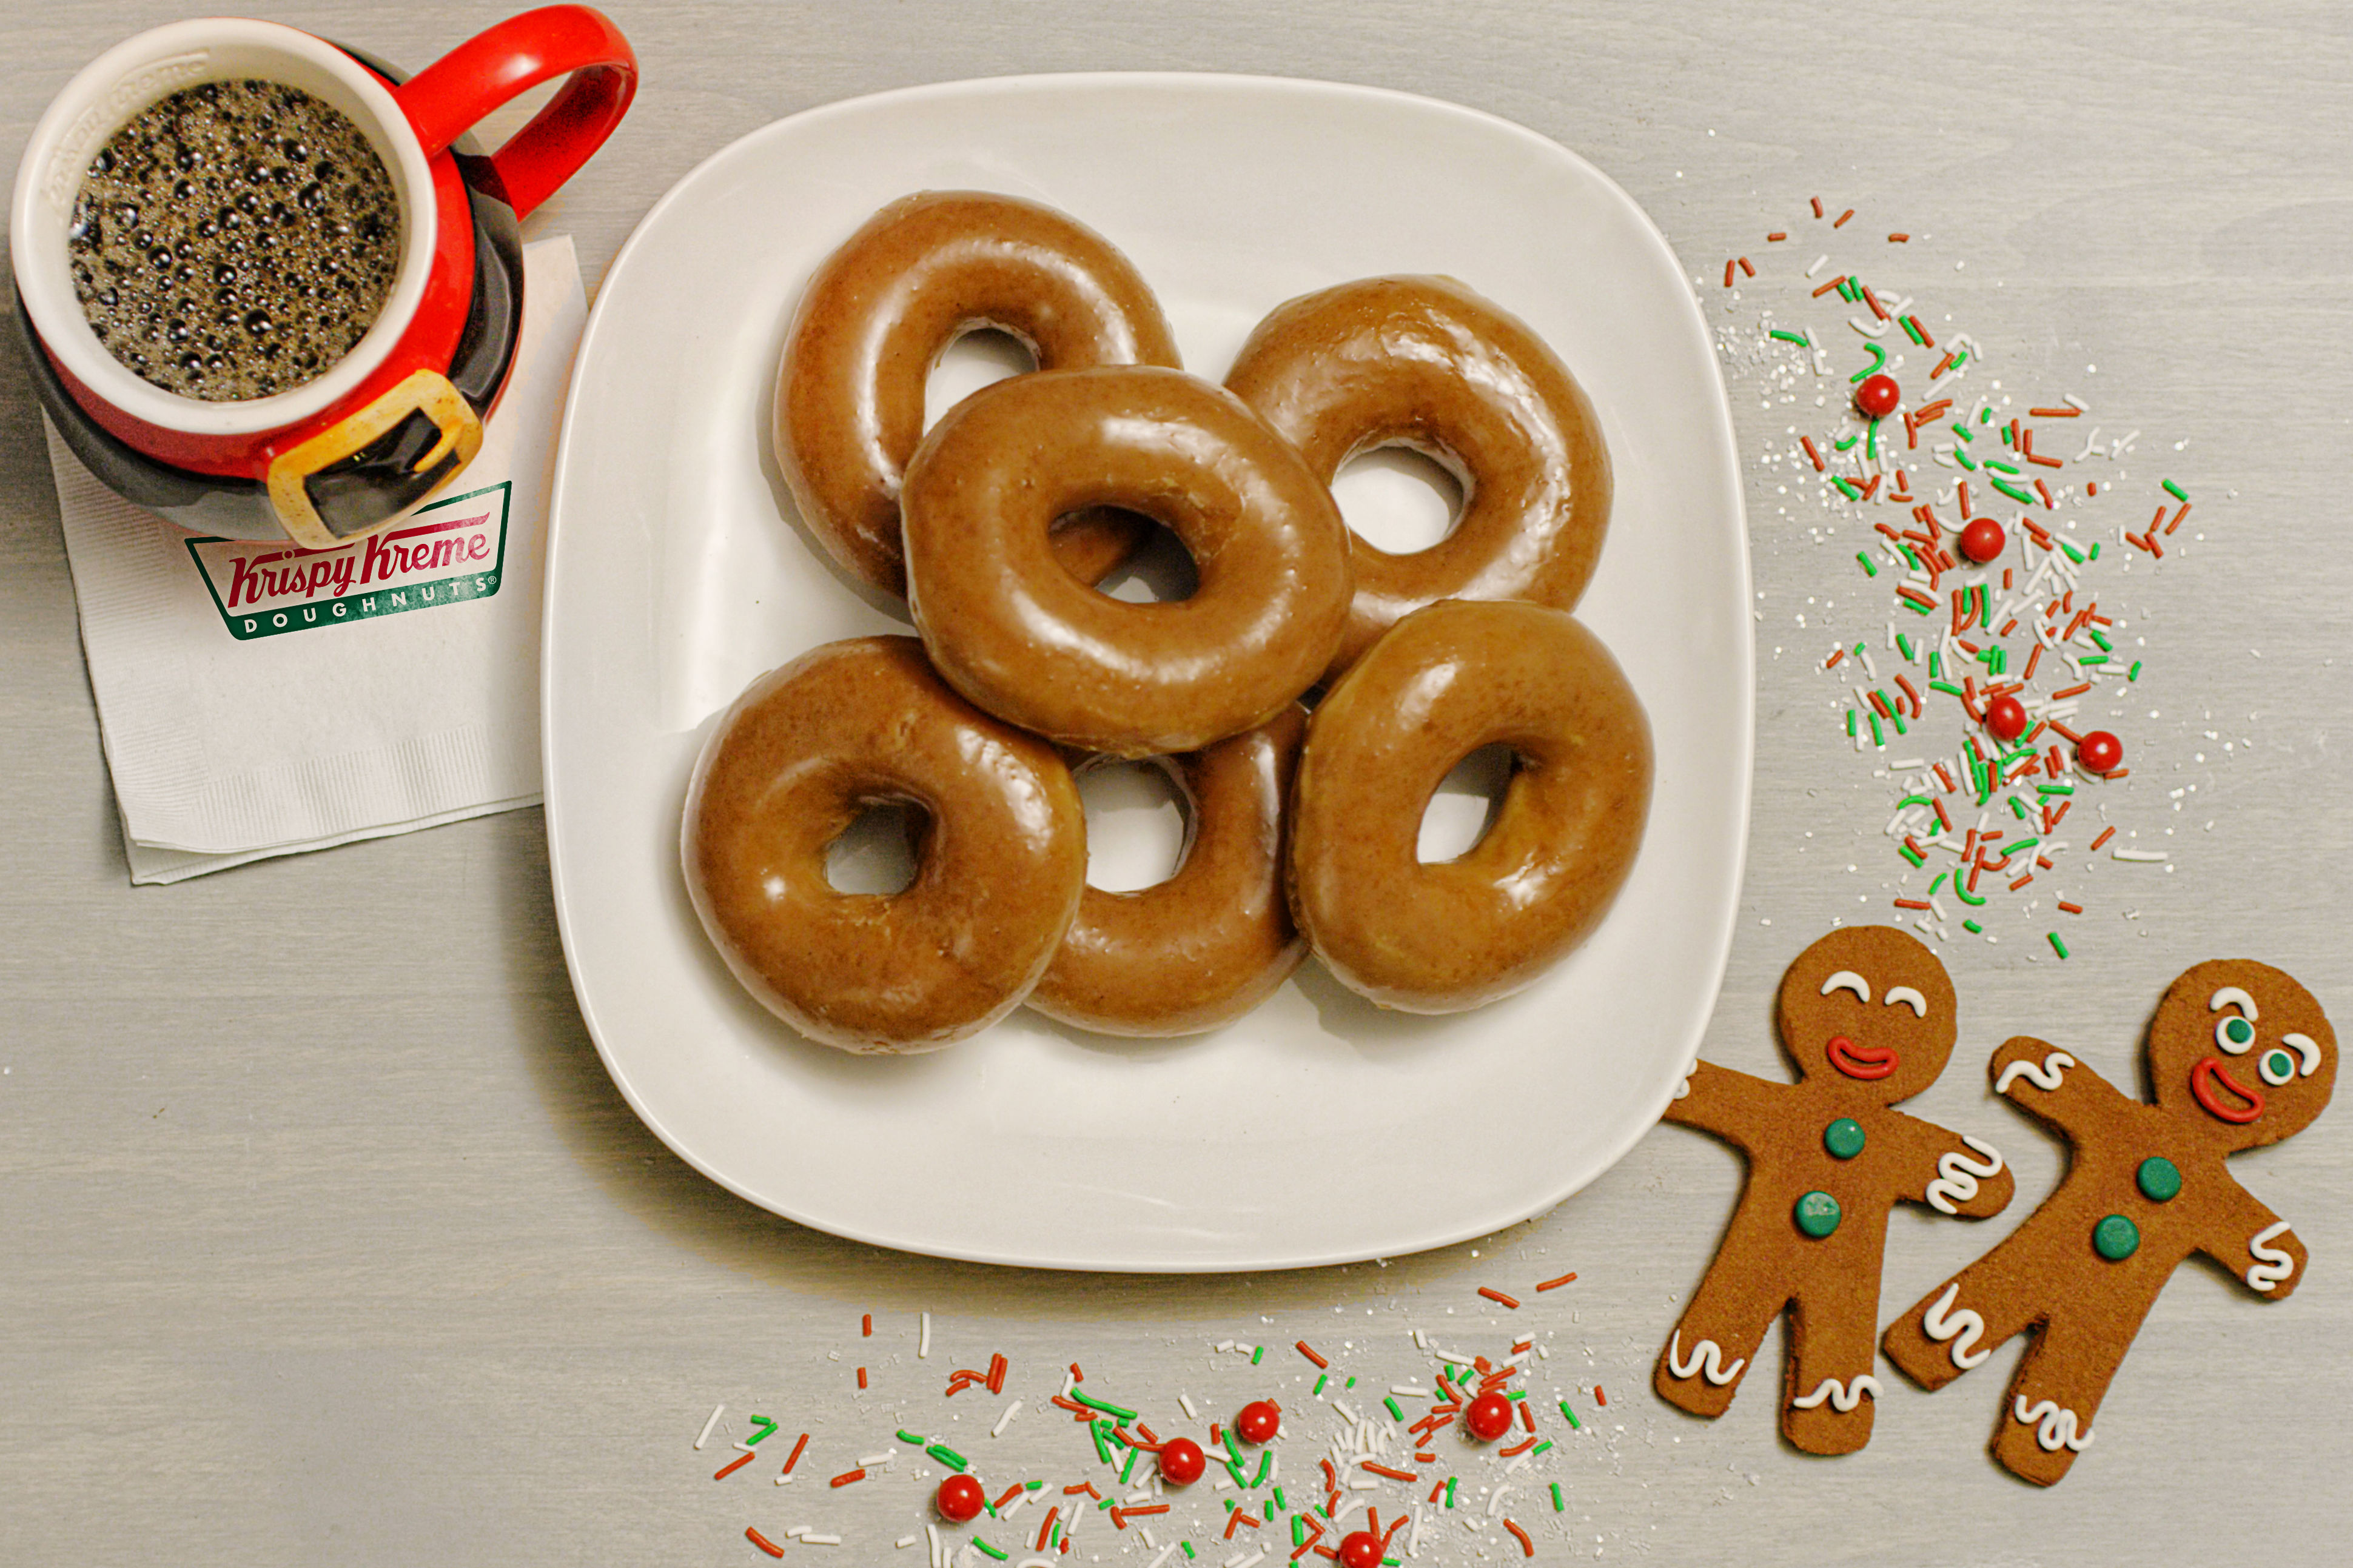 Krispy Kreme Is Debuting Gingerbread Glazed Donuts That Will Be Available for Just One Day